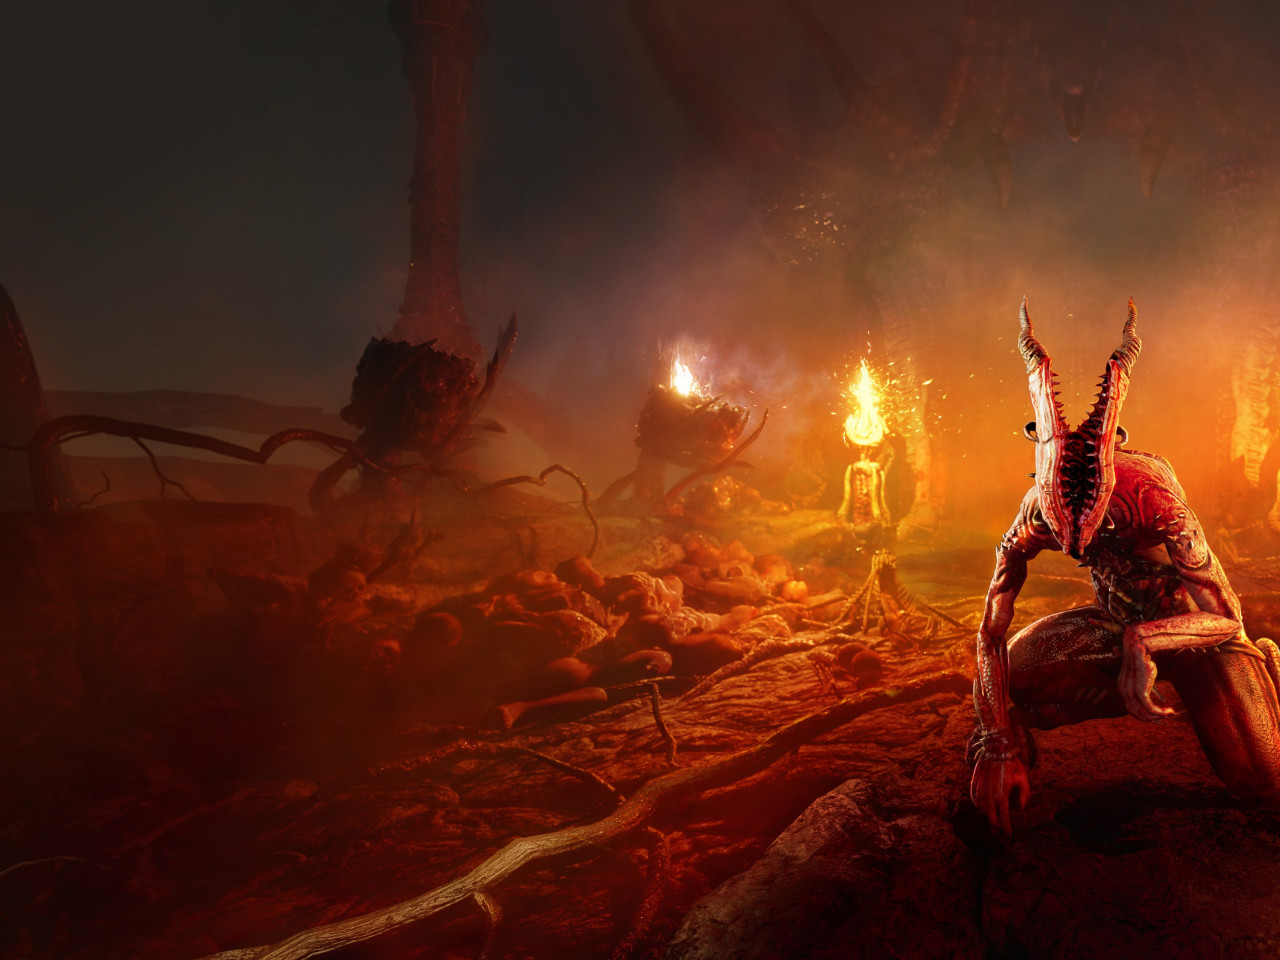 Agony, the video game wallpaper 1280x960